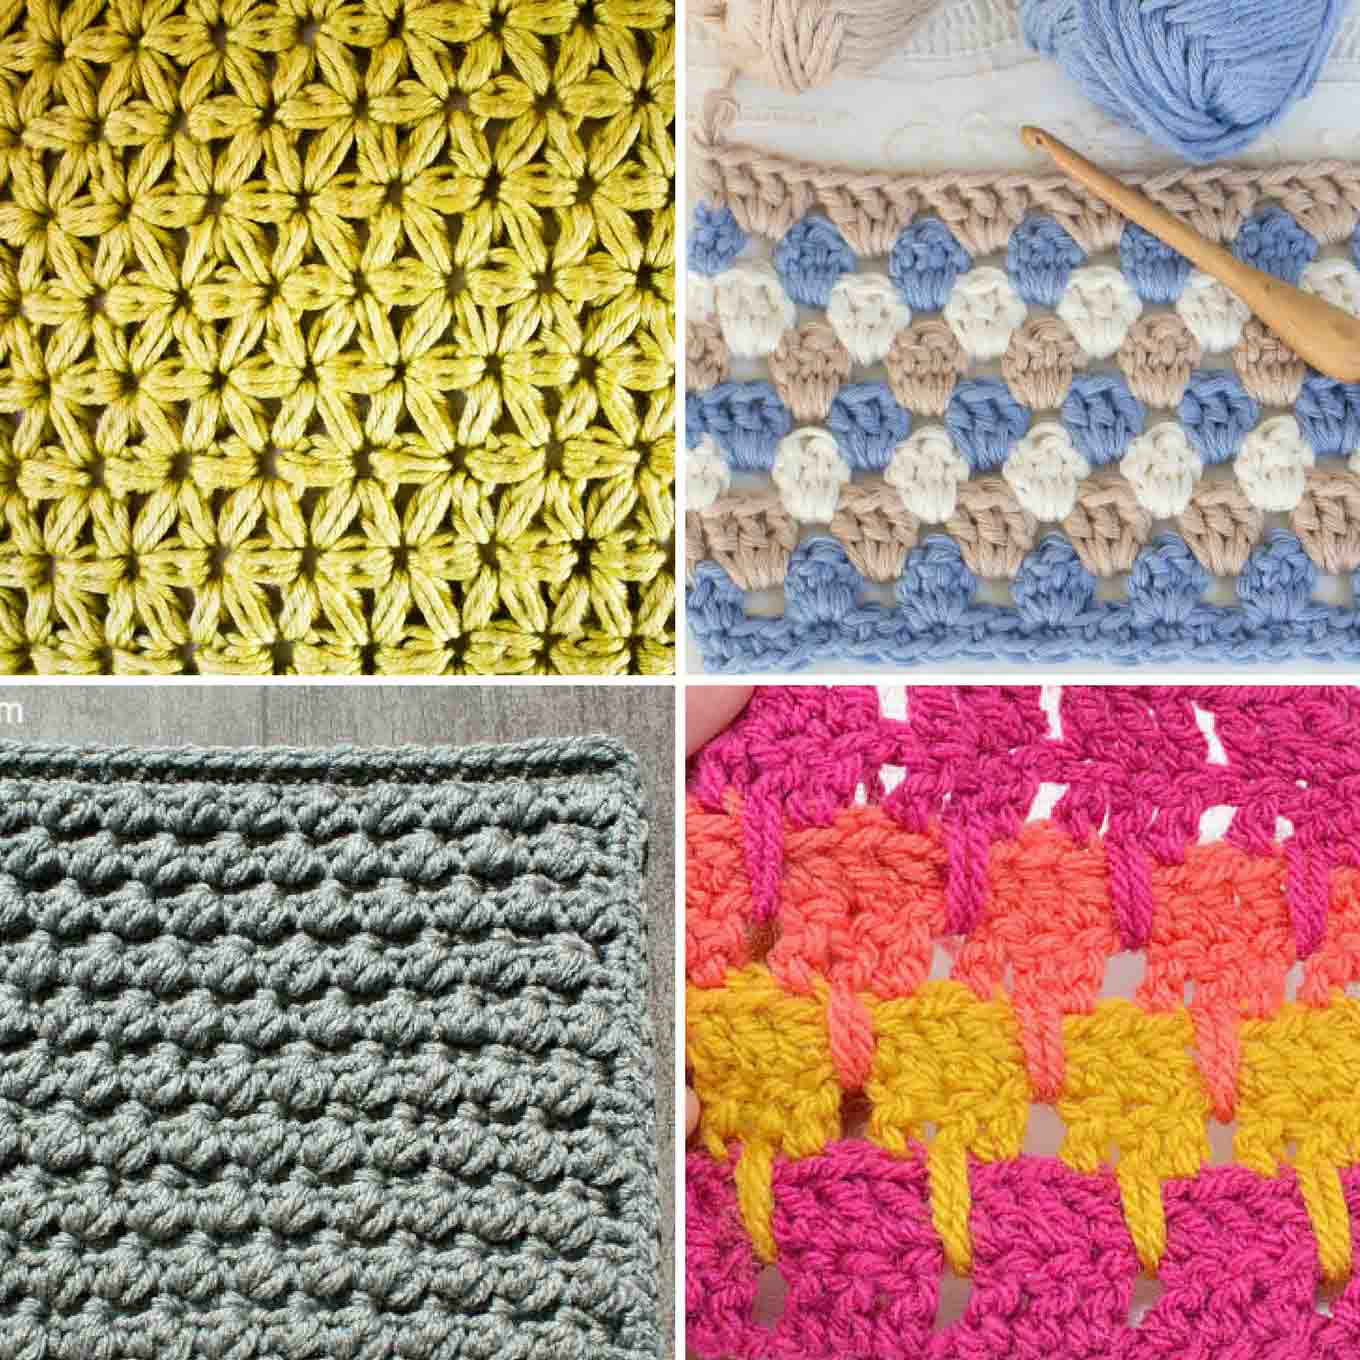 25 Crochet Stitches For Blankets and Afghans Make & Do Crew